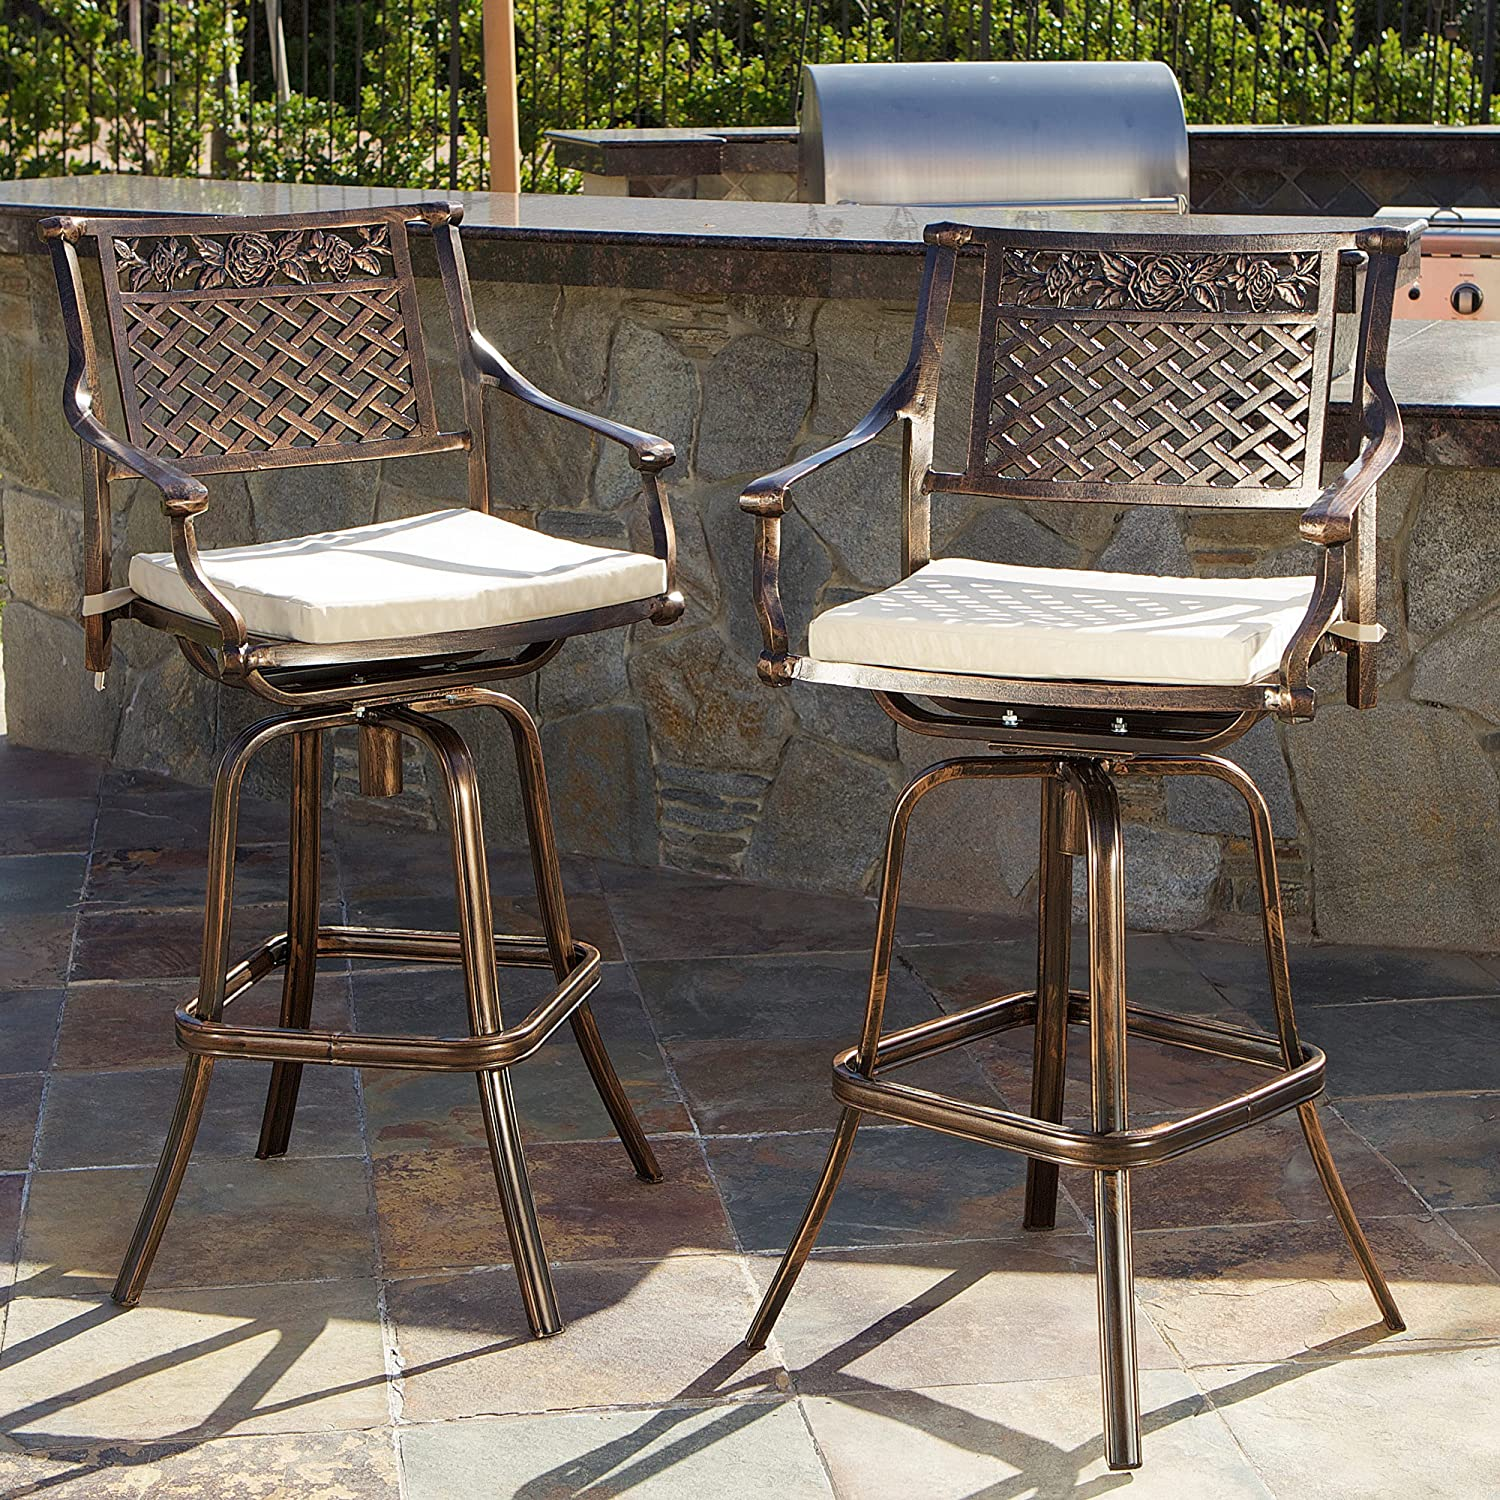 amazoncom sierra outdoor cast aluminum swivel bar stools w cushion set of 2 patio lawn u0026 garden